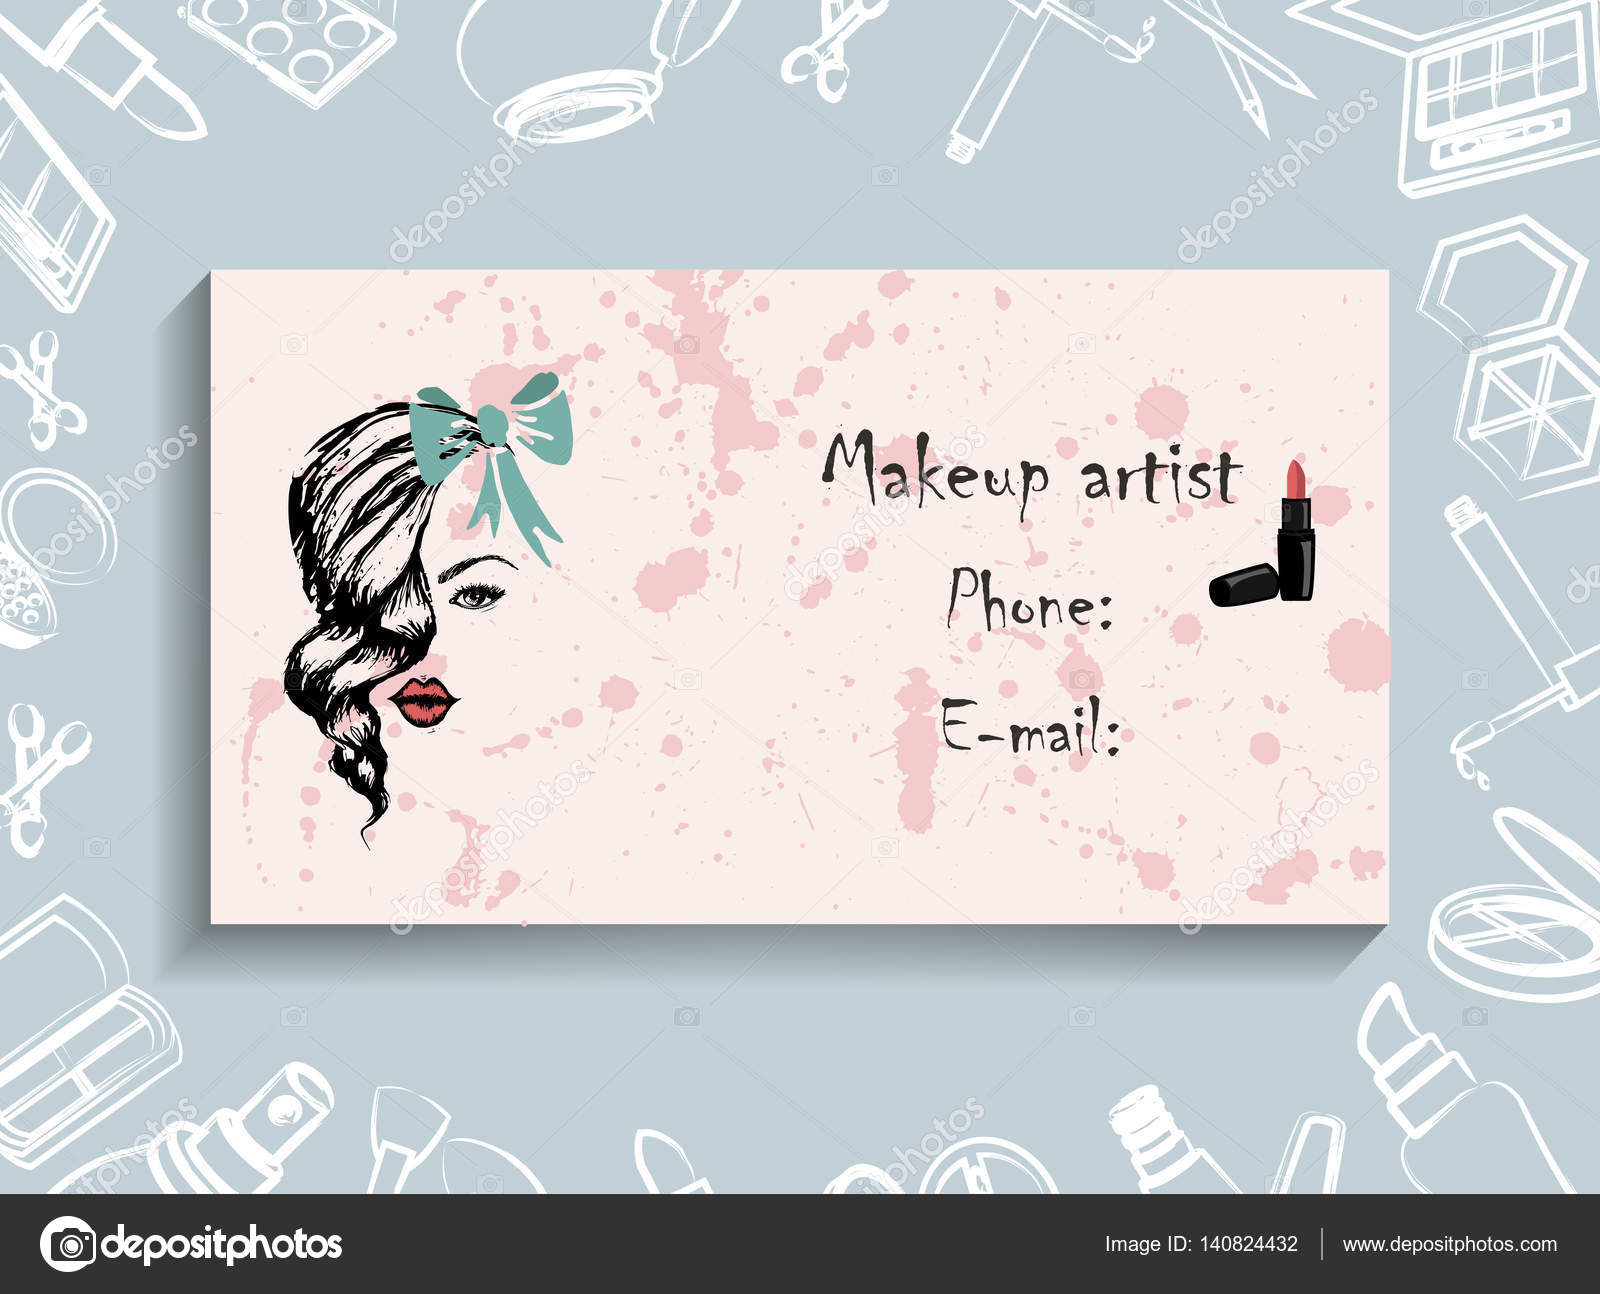 Cosmetic business cards image collections free business cards business cards corporate identity corporate style makeup artist vector illustration business cards corporate identity corporate style magicingreecefo Image collections